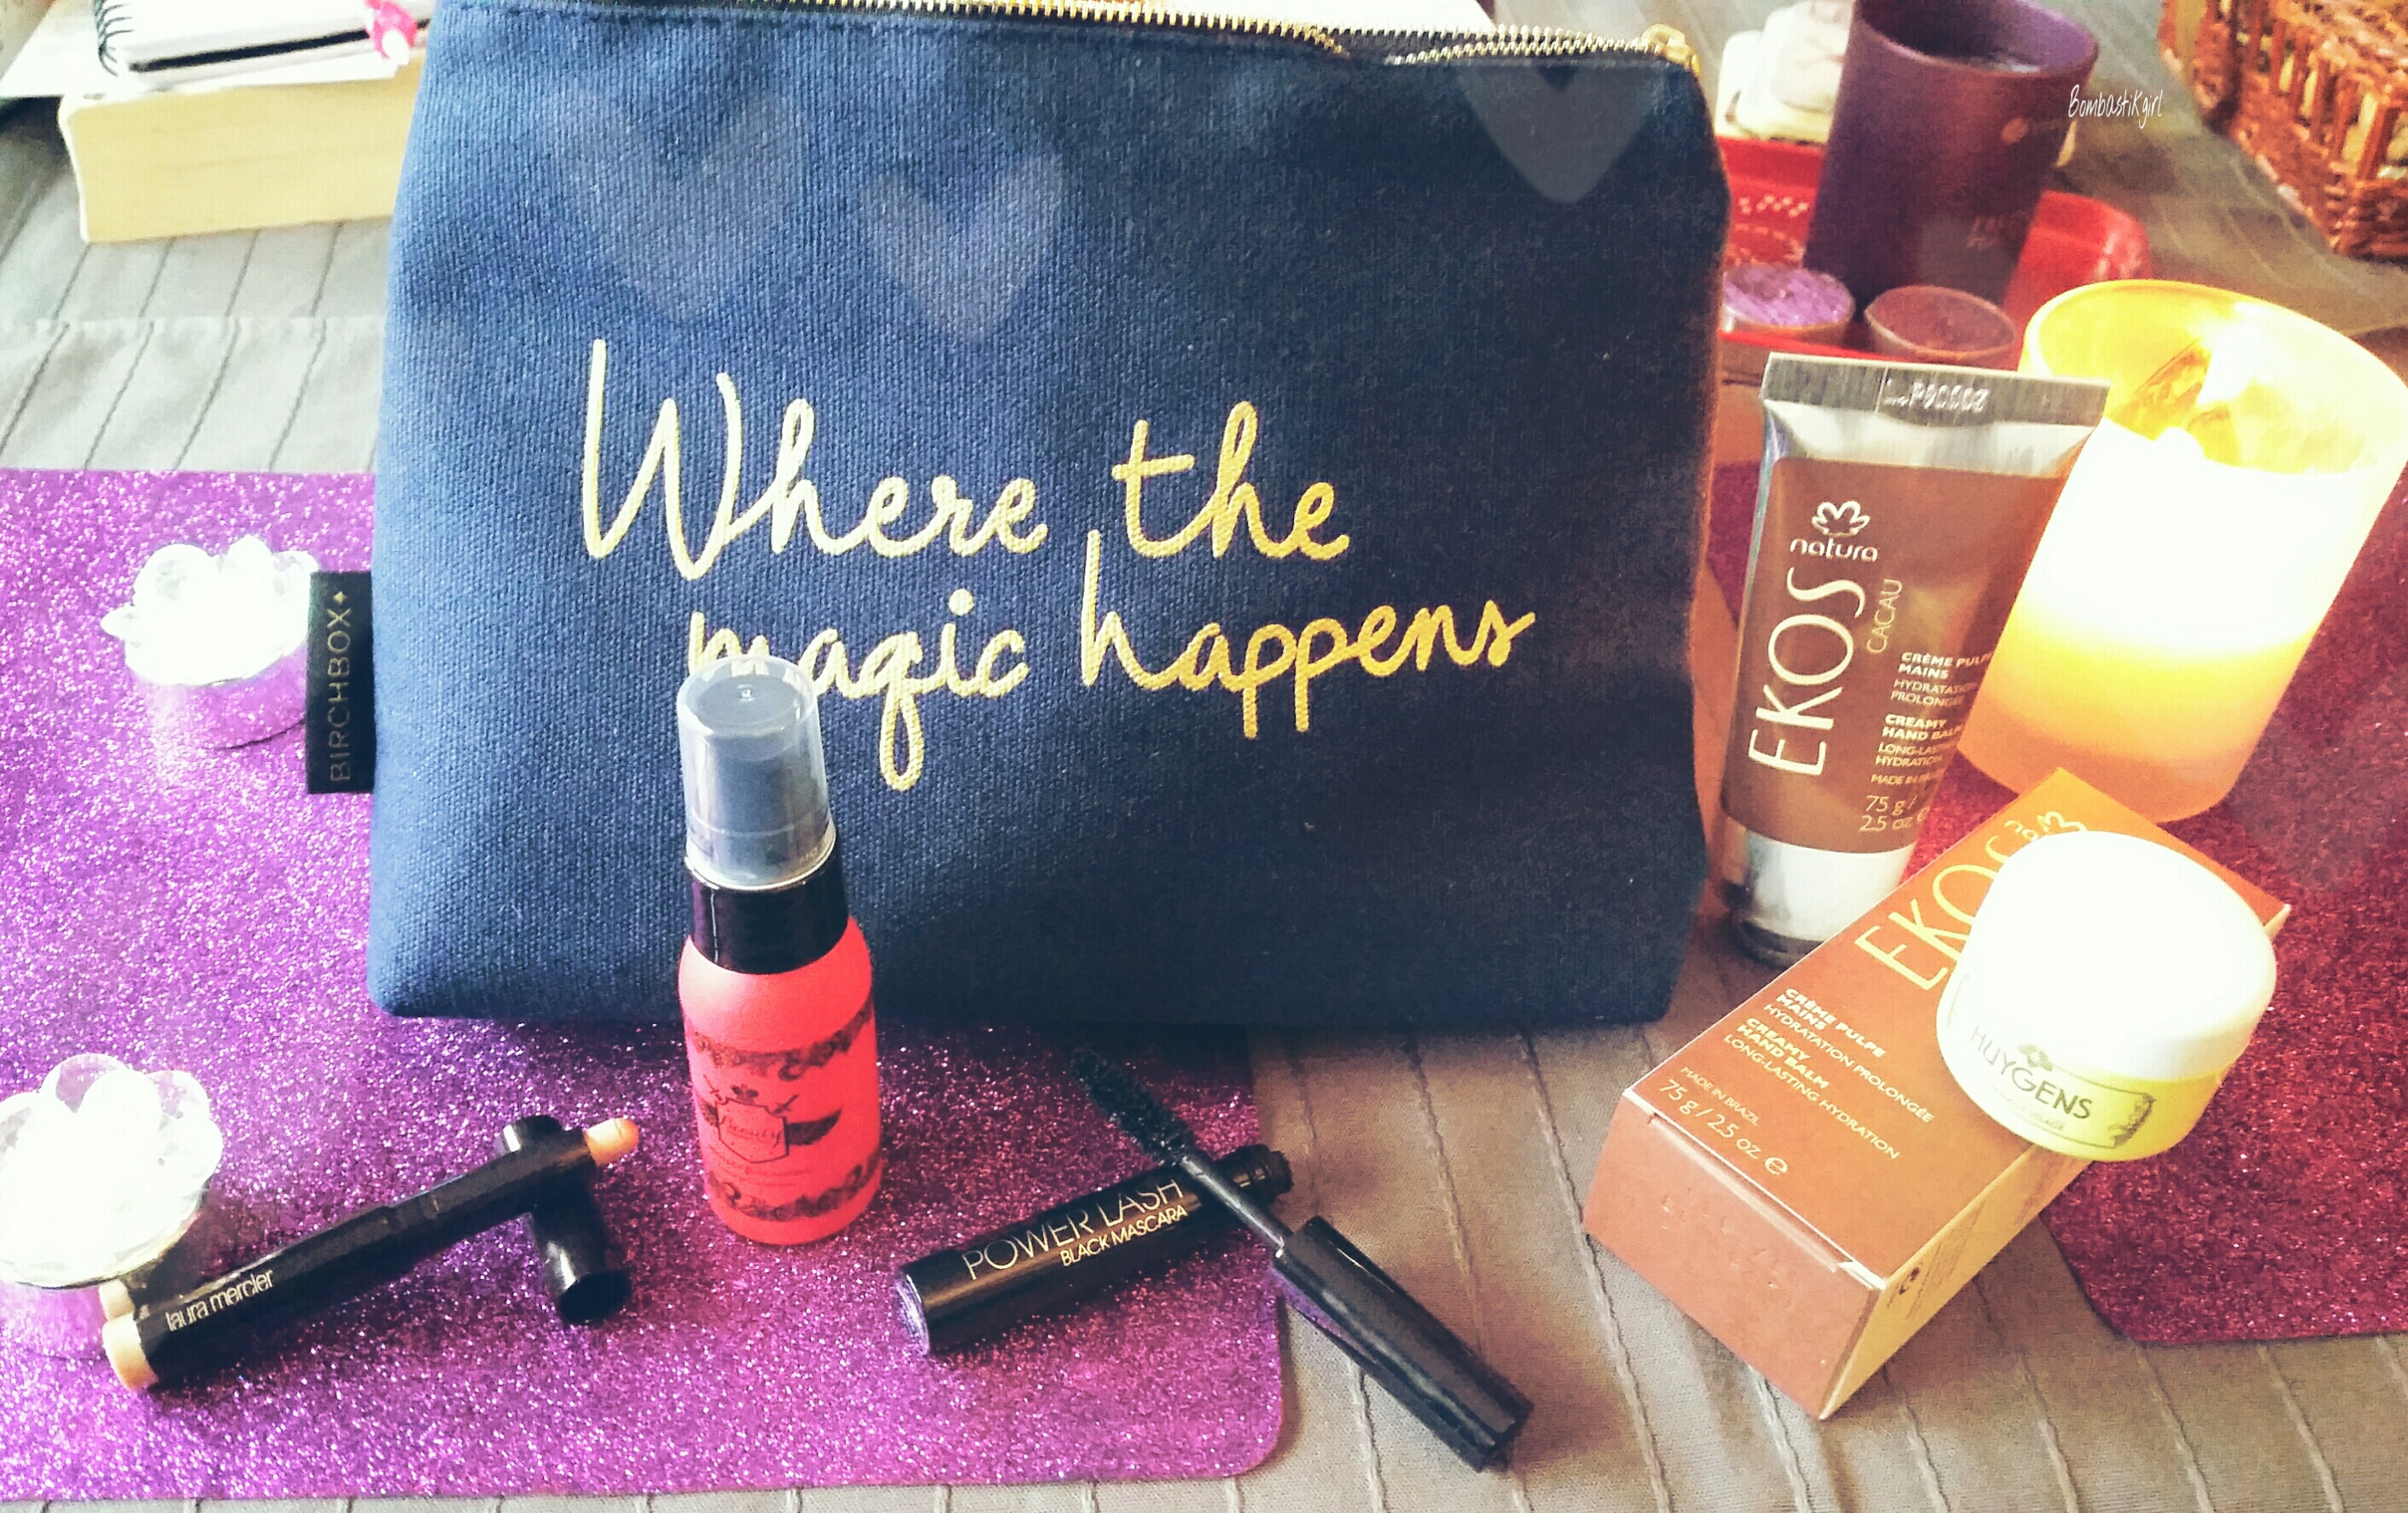 Where The Magic Happens by Birchbox